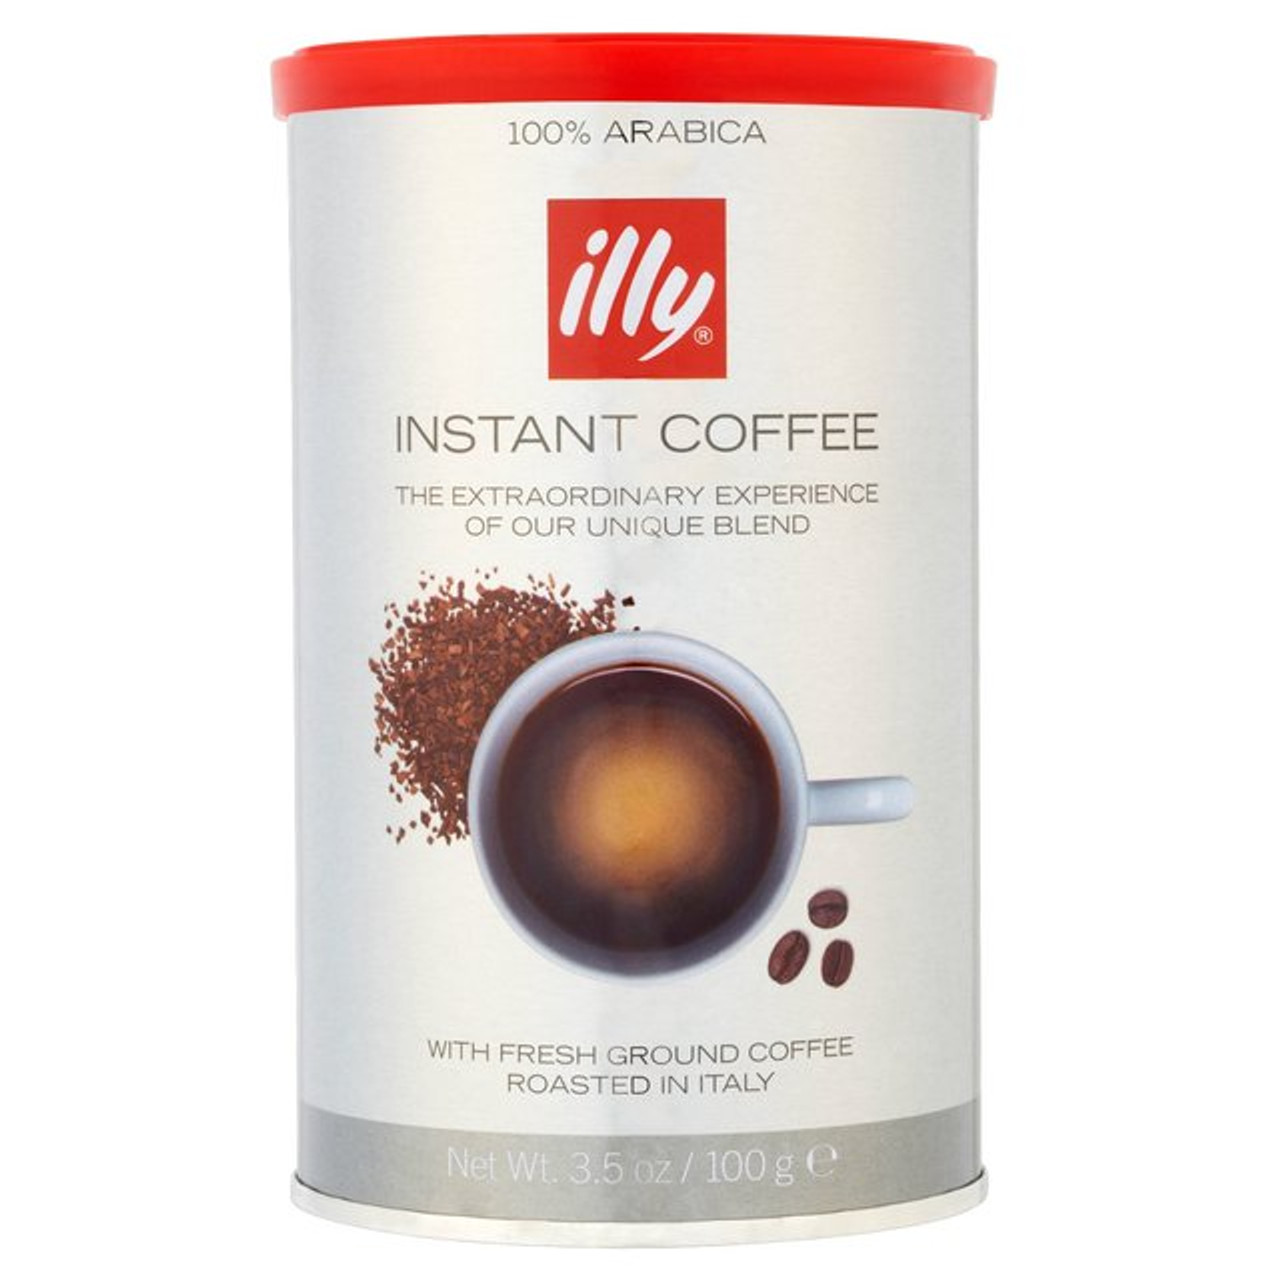 Illy Instant Coffee 100g